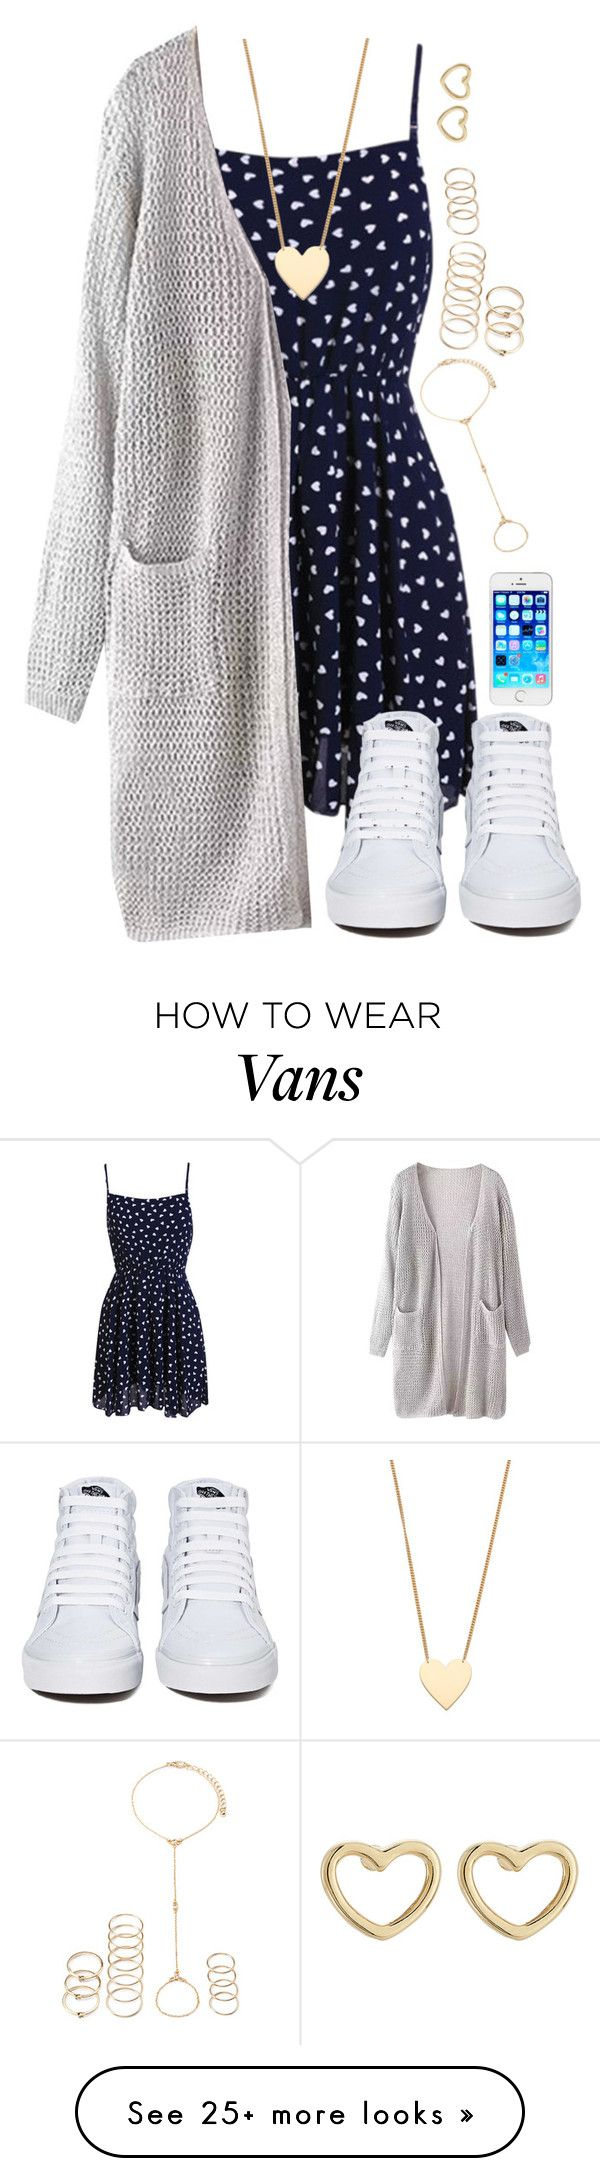 """""""Just close your eyes. The sun is going down. You'll be alright. No one can hurt you now."""" by fernym on Polyvore featuring Vans, Marc by Marc Jacobs, Jennifer Zeuner, Forever 21, taylorswift, vans, iphone and lyrics"""